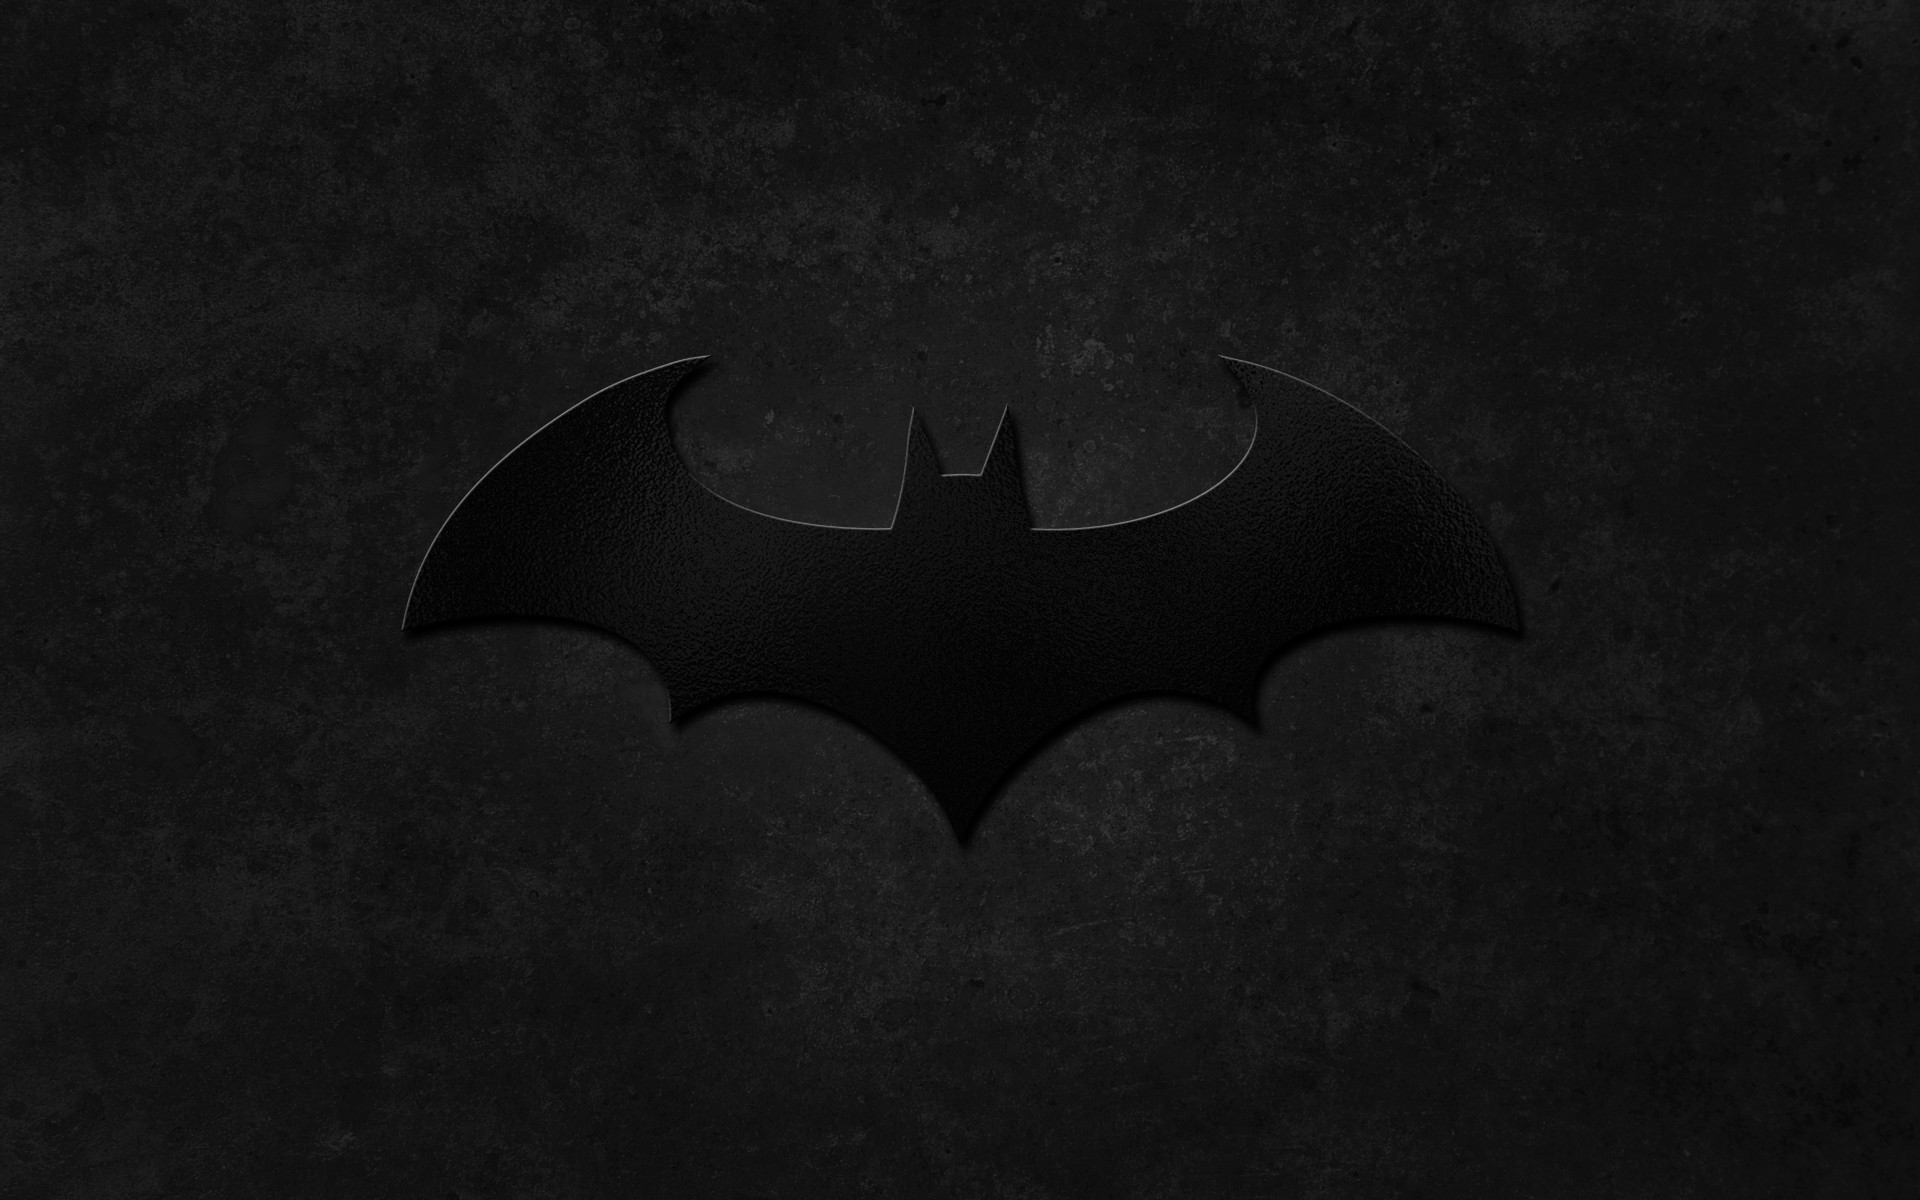 1920x1200 Batman Logo wallpapers For Free Download HD p | HD Wallpapers | Pinterest |  Wallpaper, Logos and Hd wallpaper